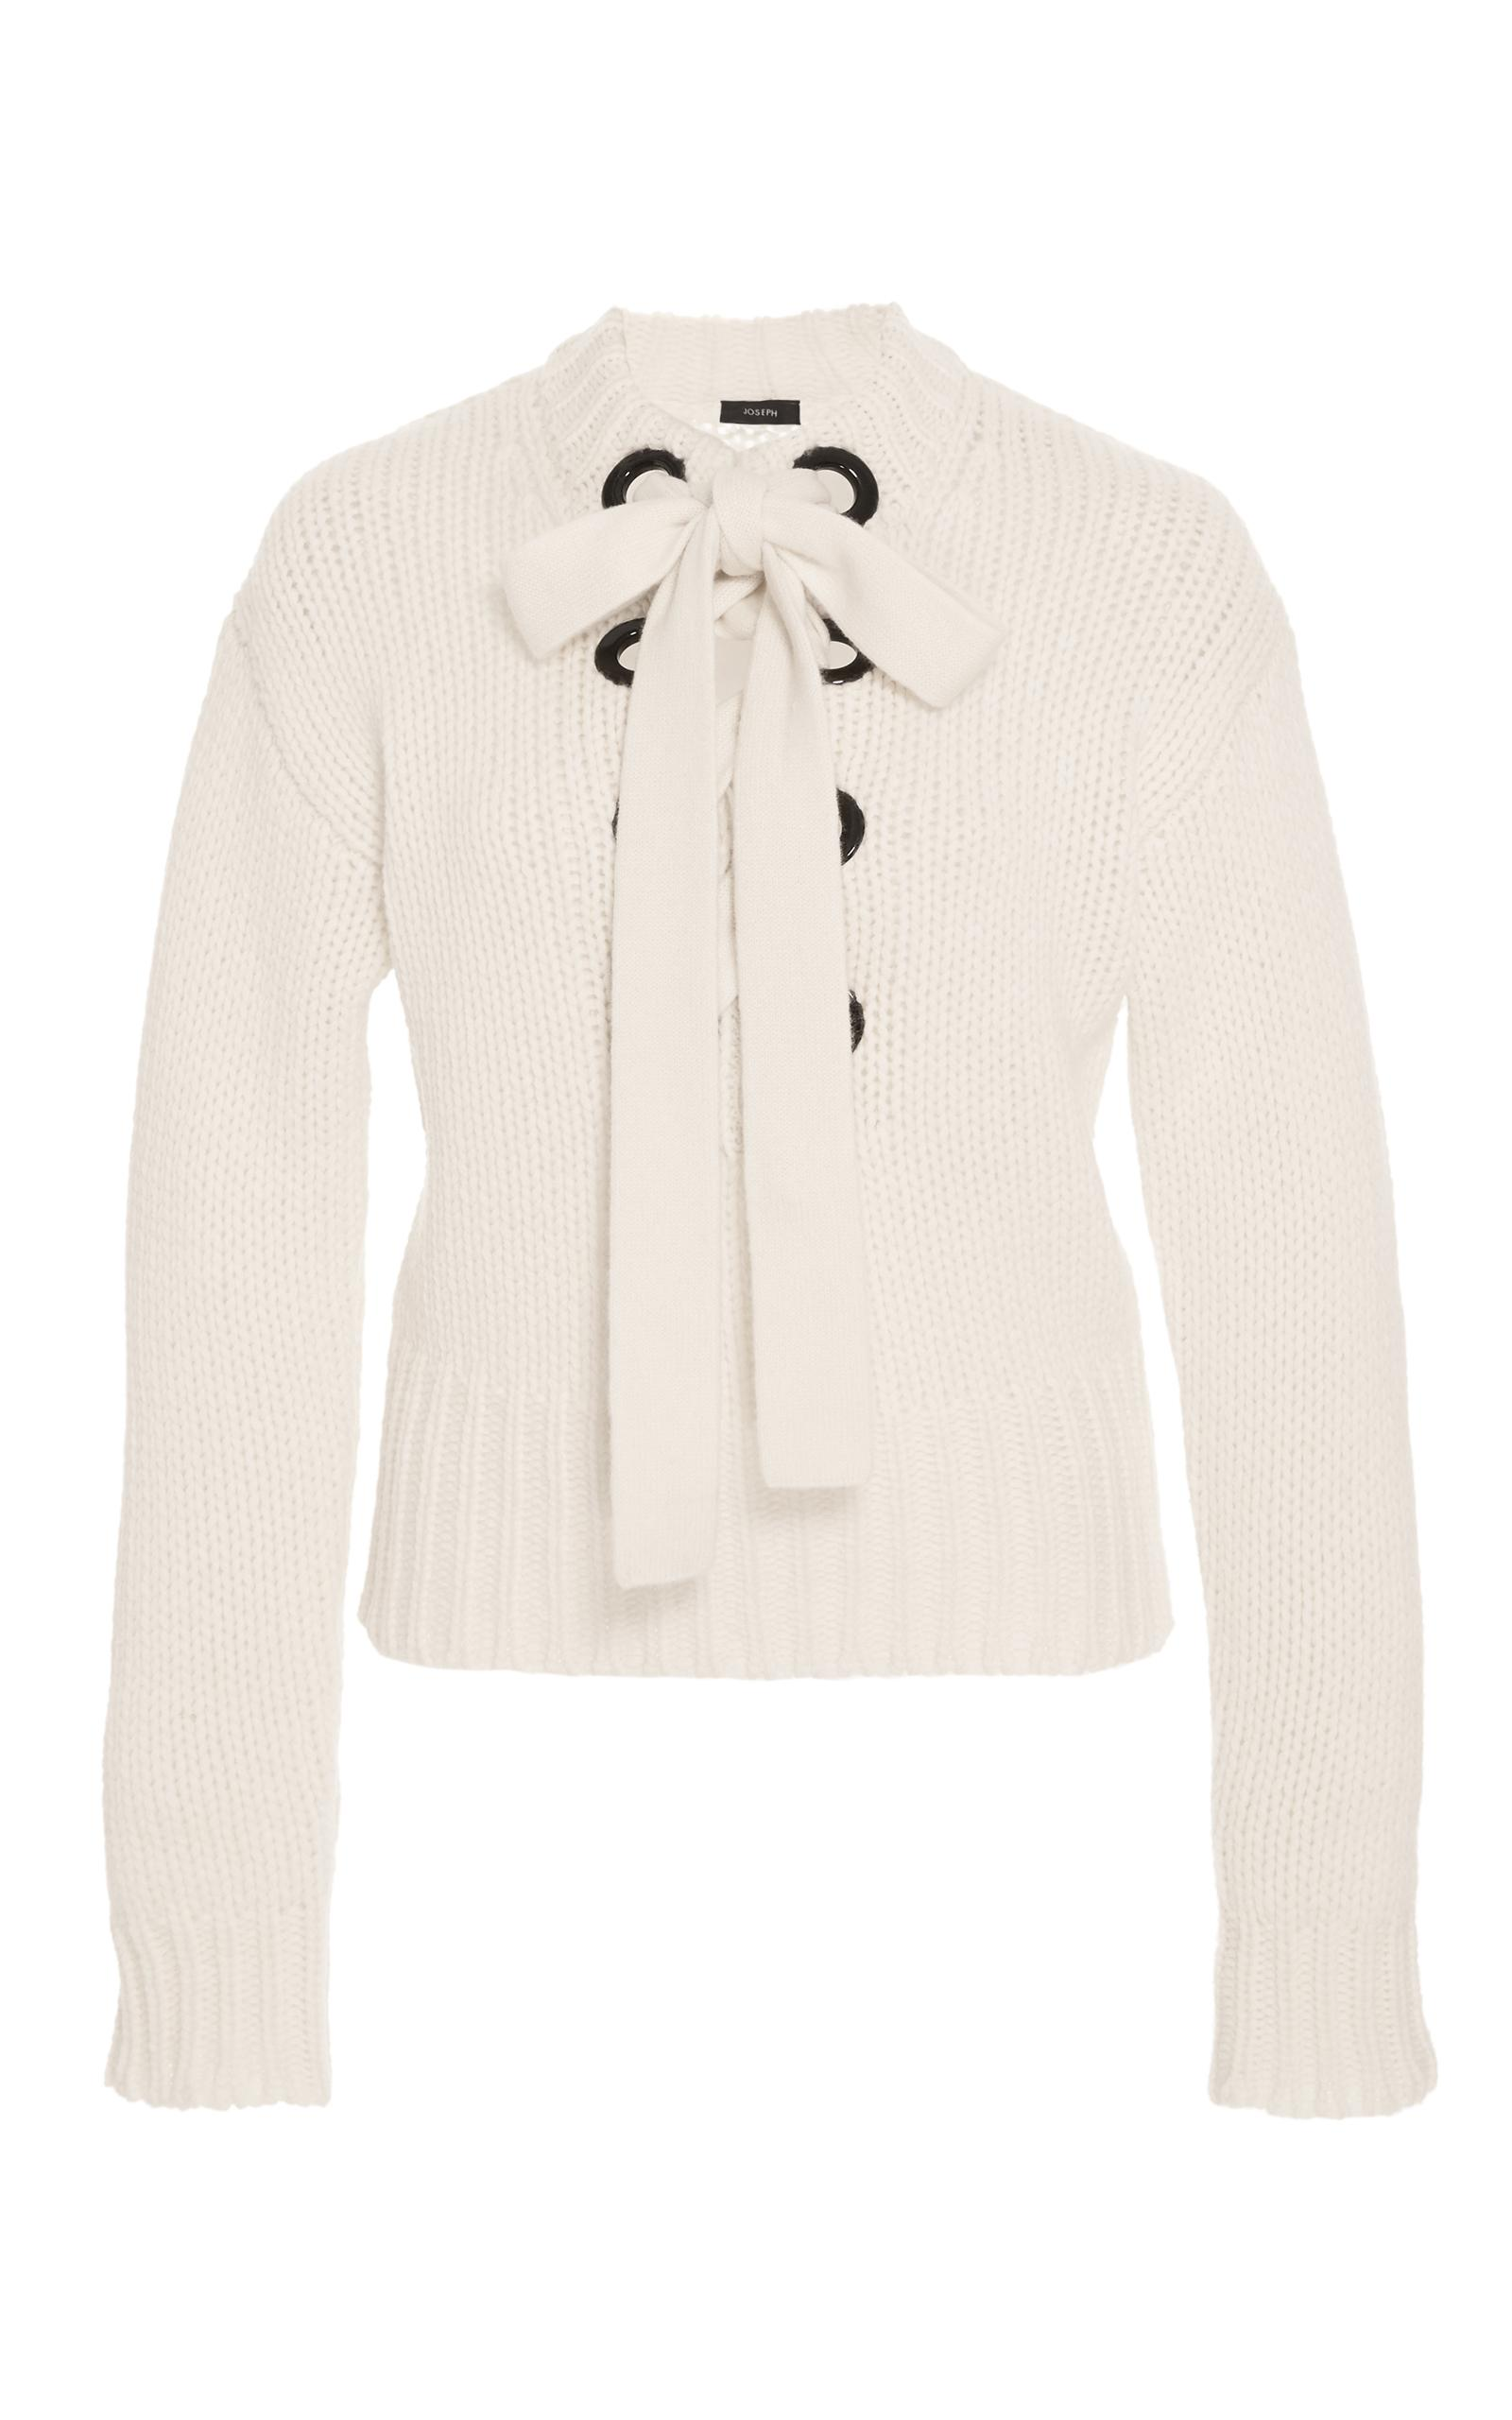 Joseph Chunky Cashmere Lace Up Sweater in White | Lyst